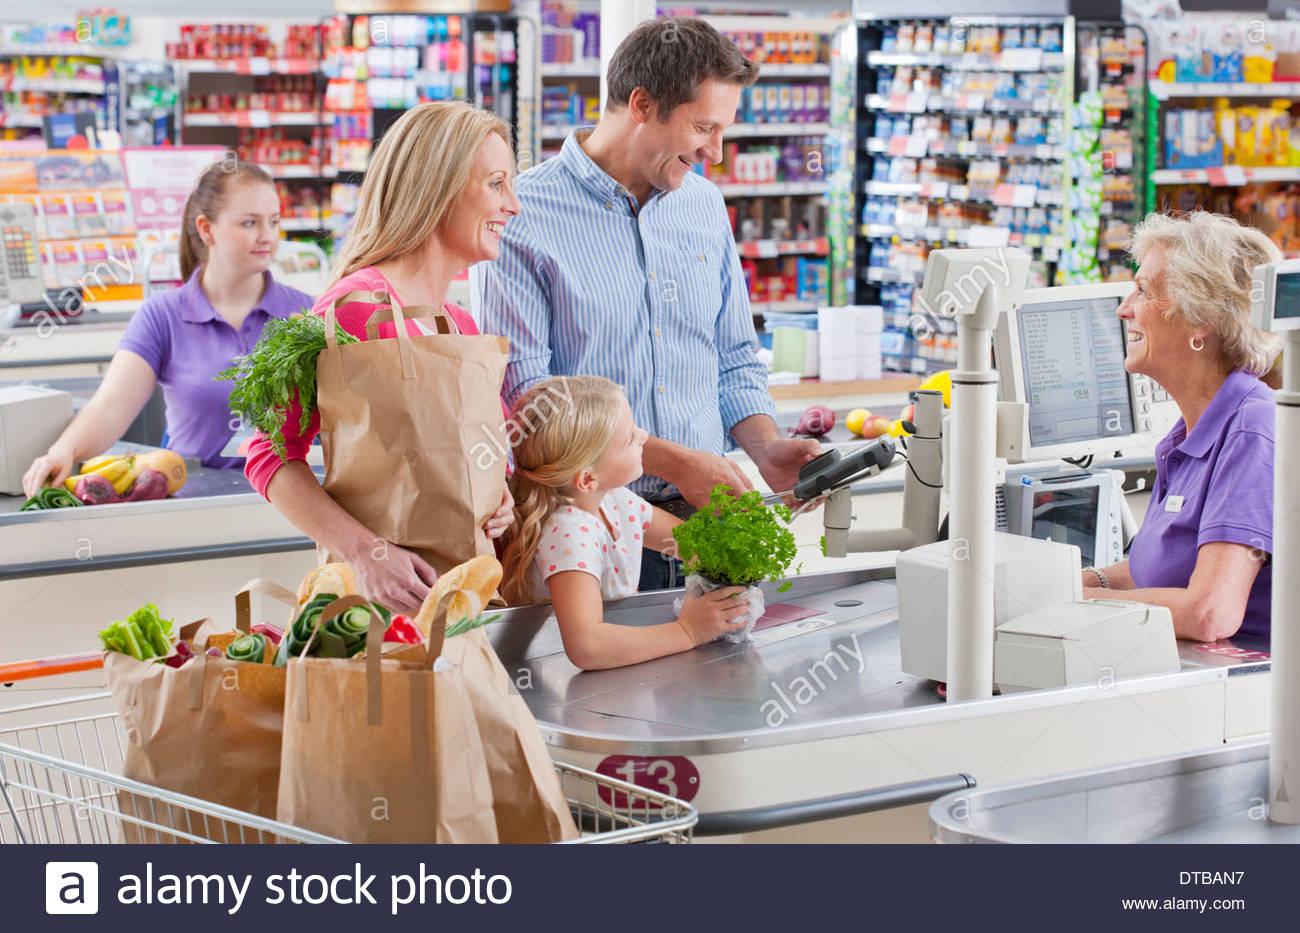 Grocery Checkout